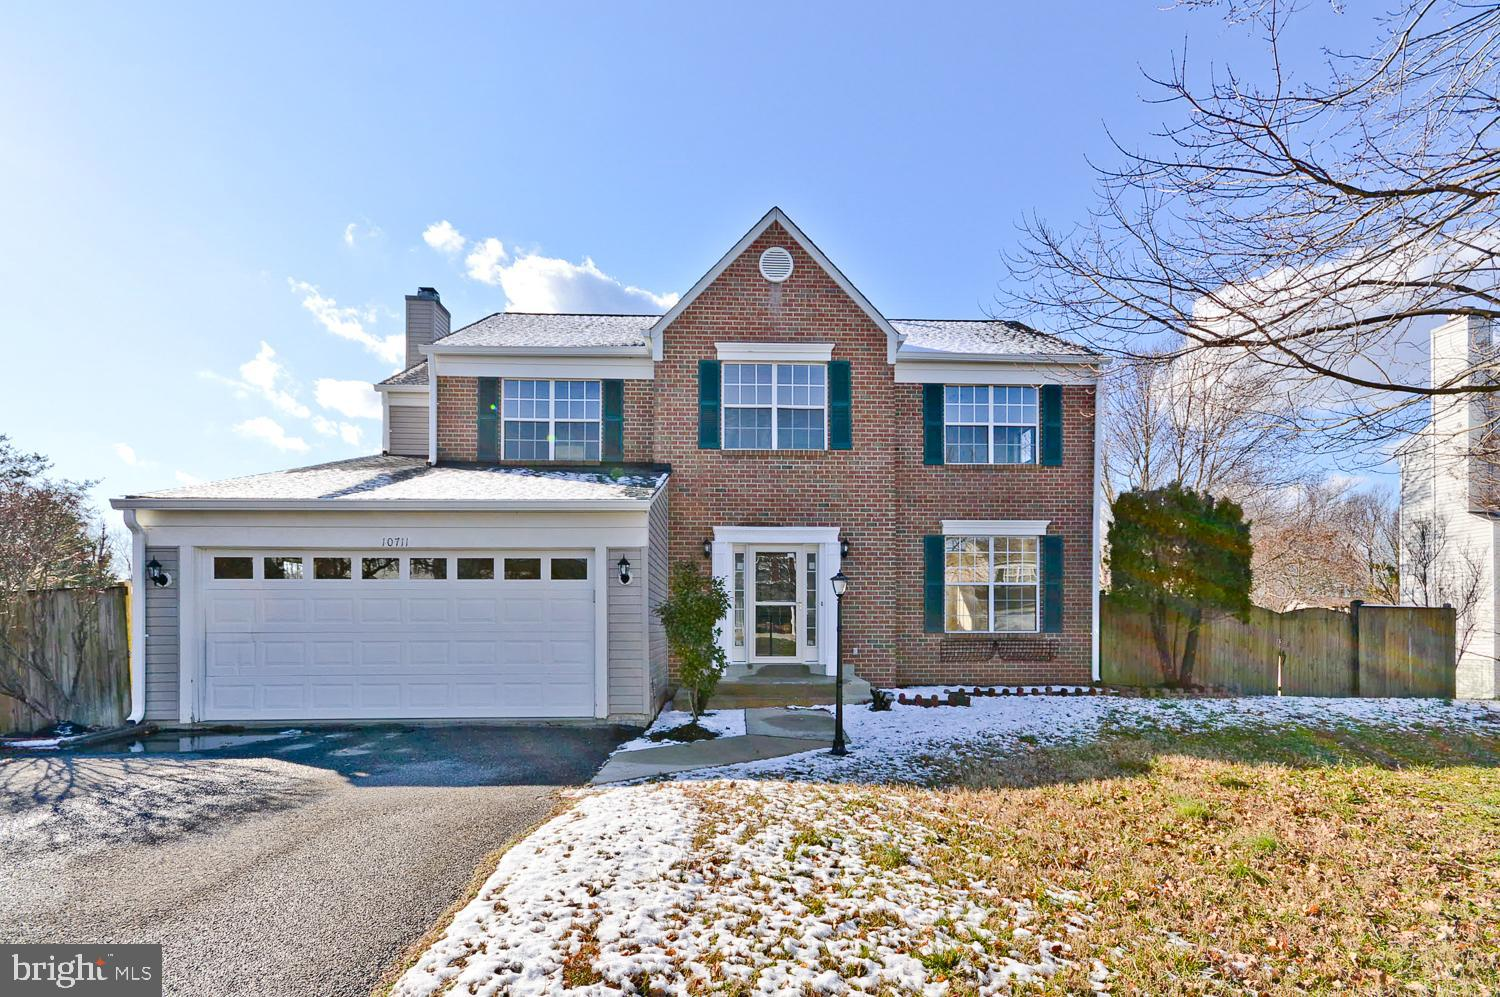 10711 WEMBROUGH PLACE, CHELTENHAM, MD 20623